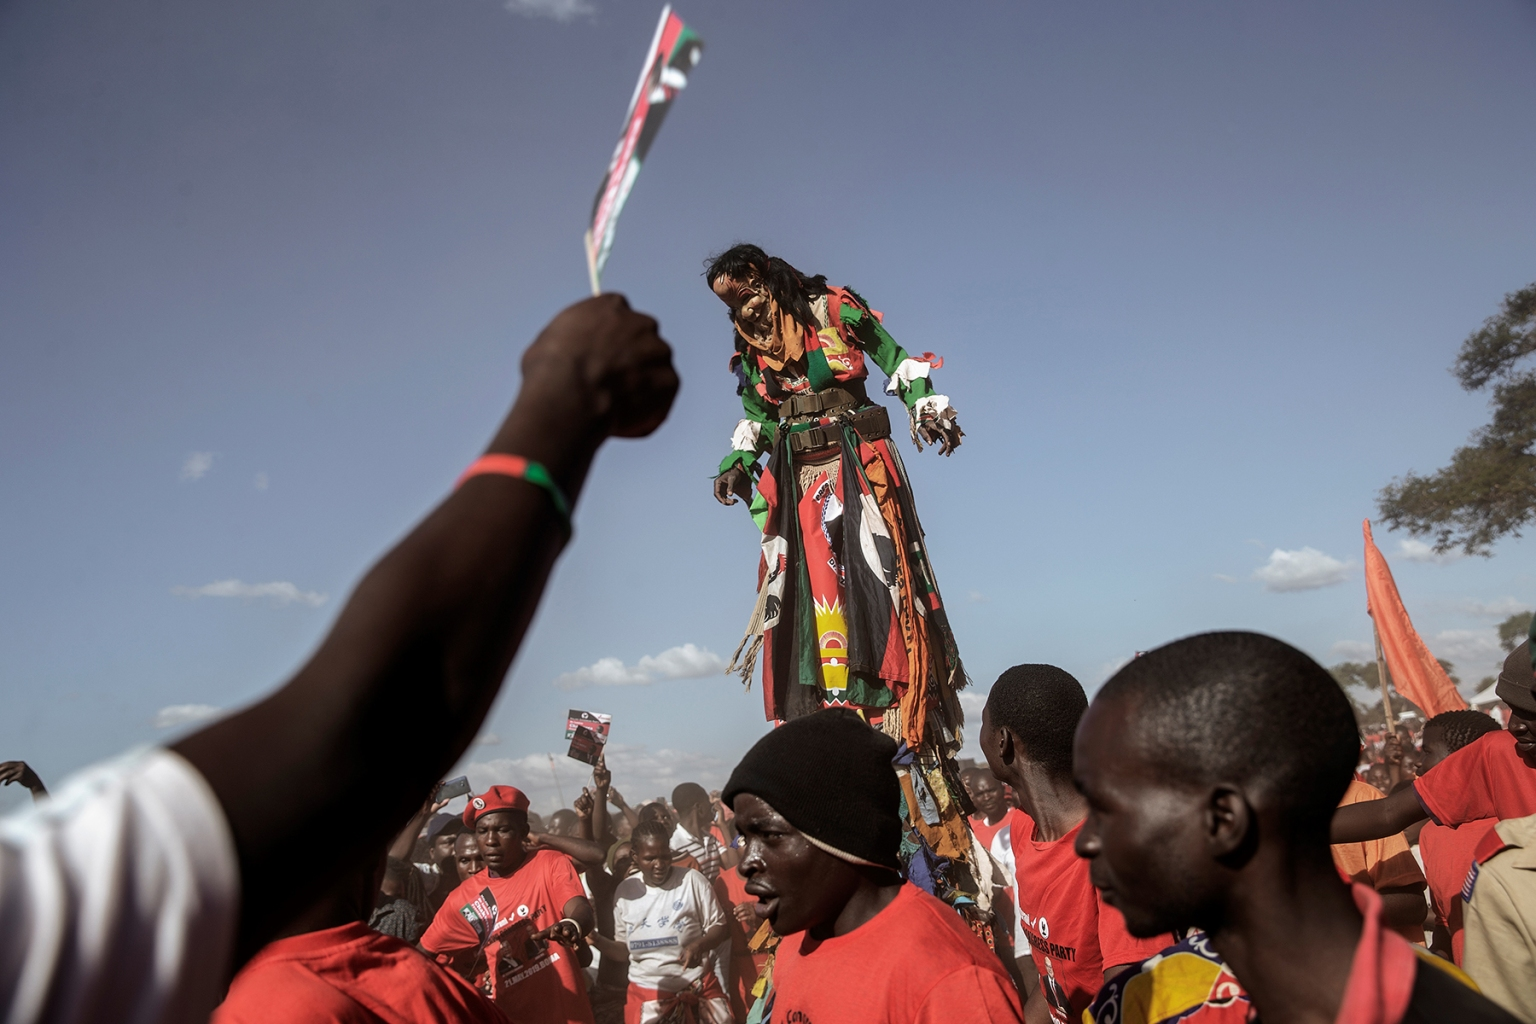 A traditional masked man on stilts entertains Malawi Congress Party leader and presidential candidate supporters waiting for his arrival at the last presidential campaign rally in Lilongwe on May 18. GIANLUIGI GUERCIA/AFP/Getty Images